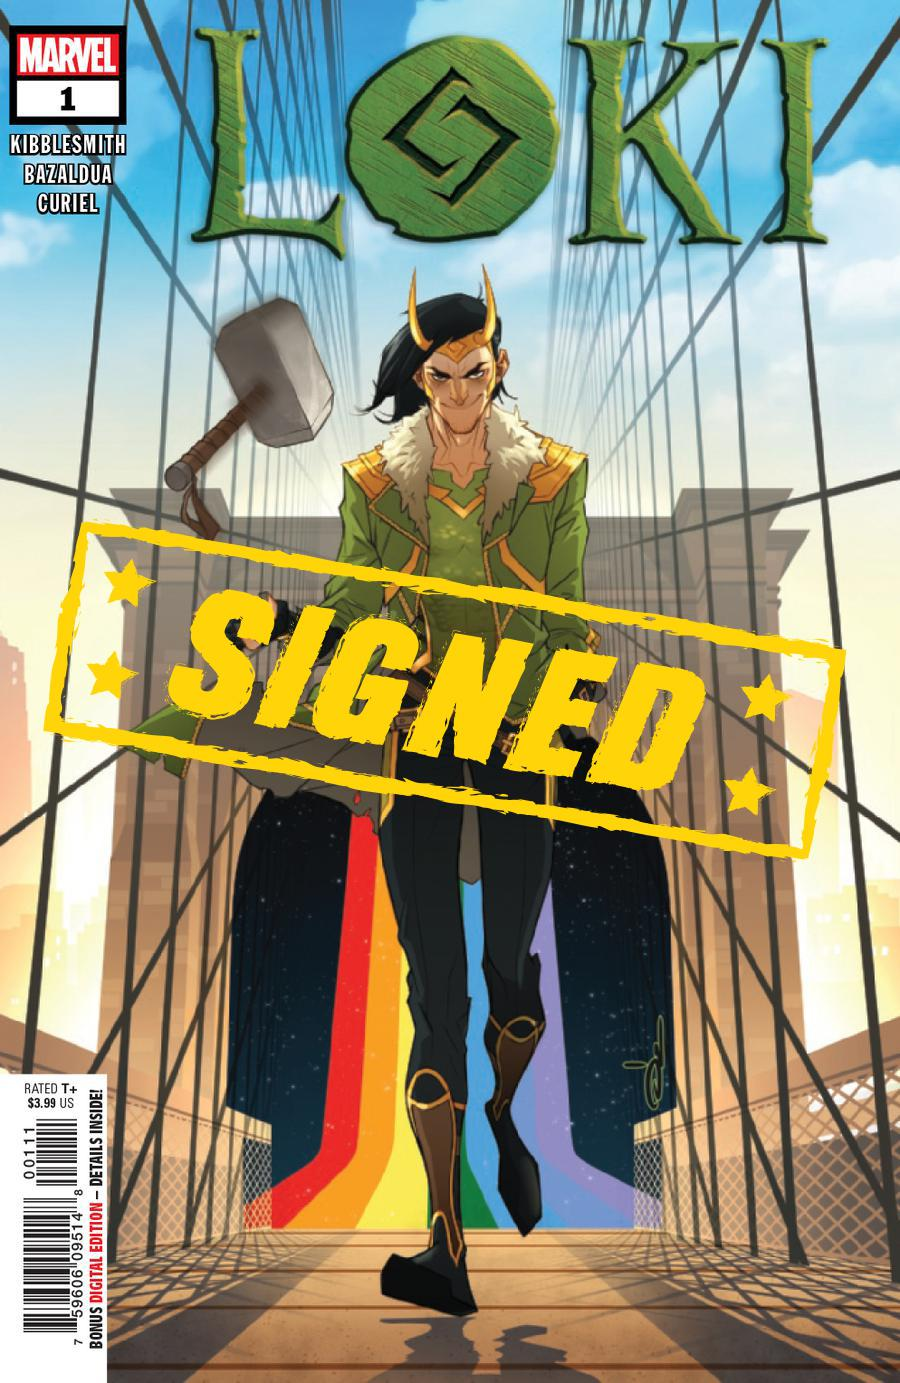 Loki Vol 3 #1 Cover E Regular Ozgur Yildirim Cover Signed By Daniel Kibblesmith